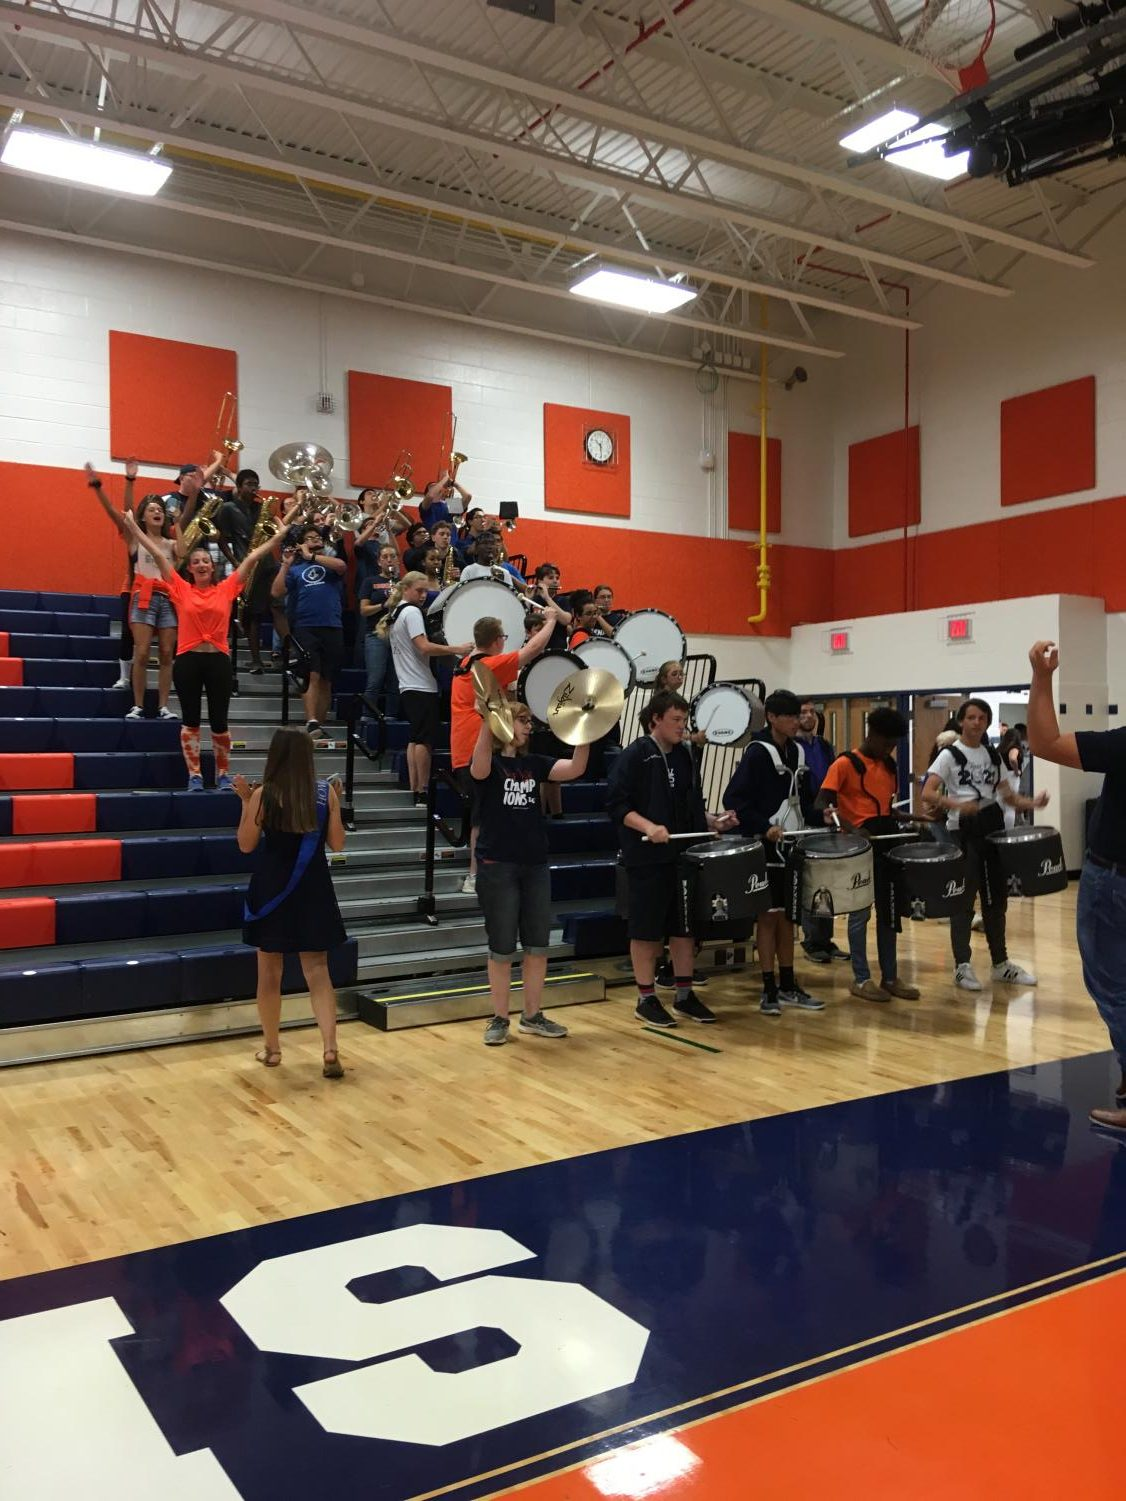 At the annual Homecoming Pep Rally, the band plays to energize the student body. They earned acclaim for spirit during football season.